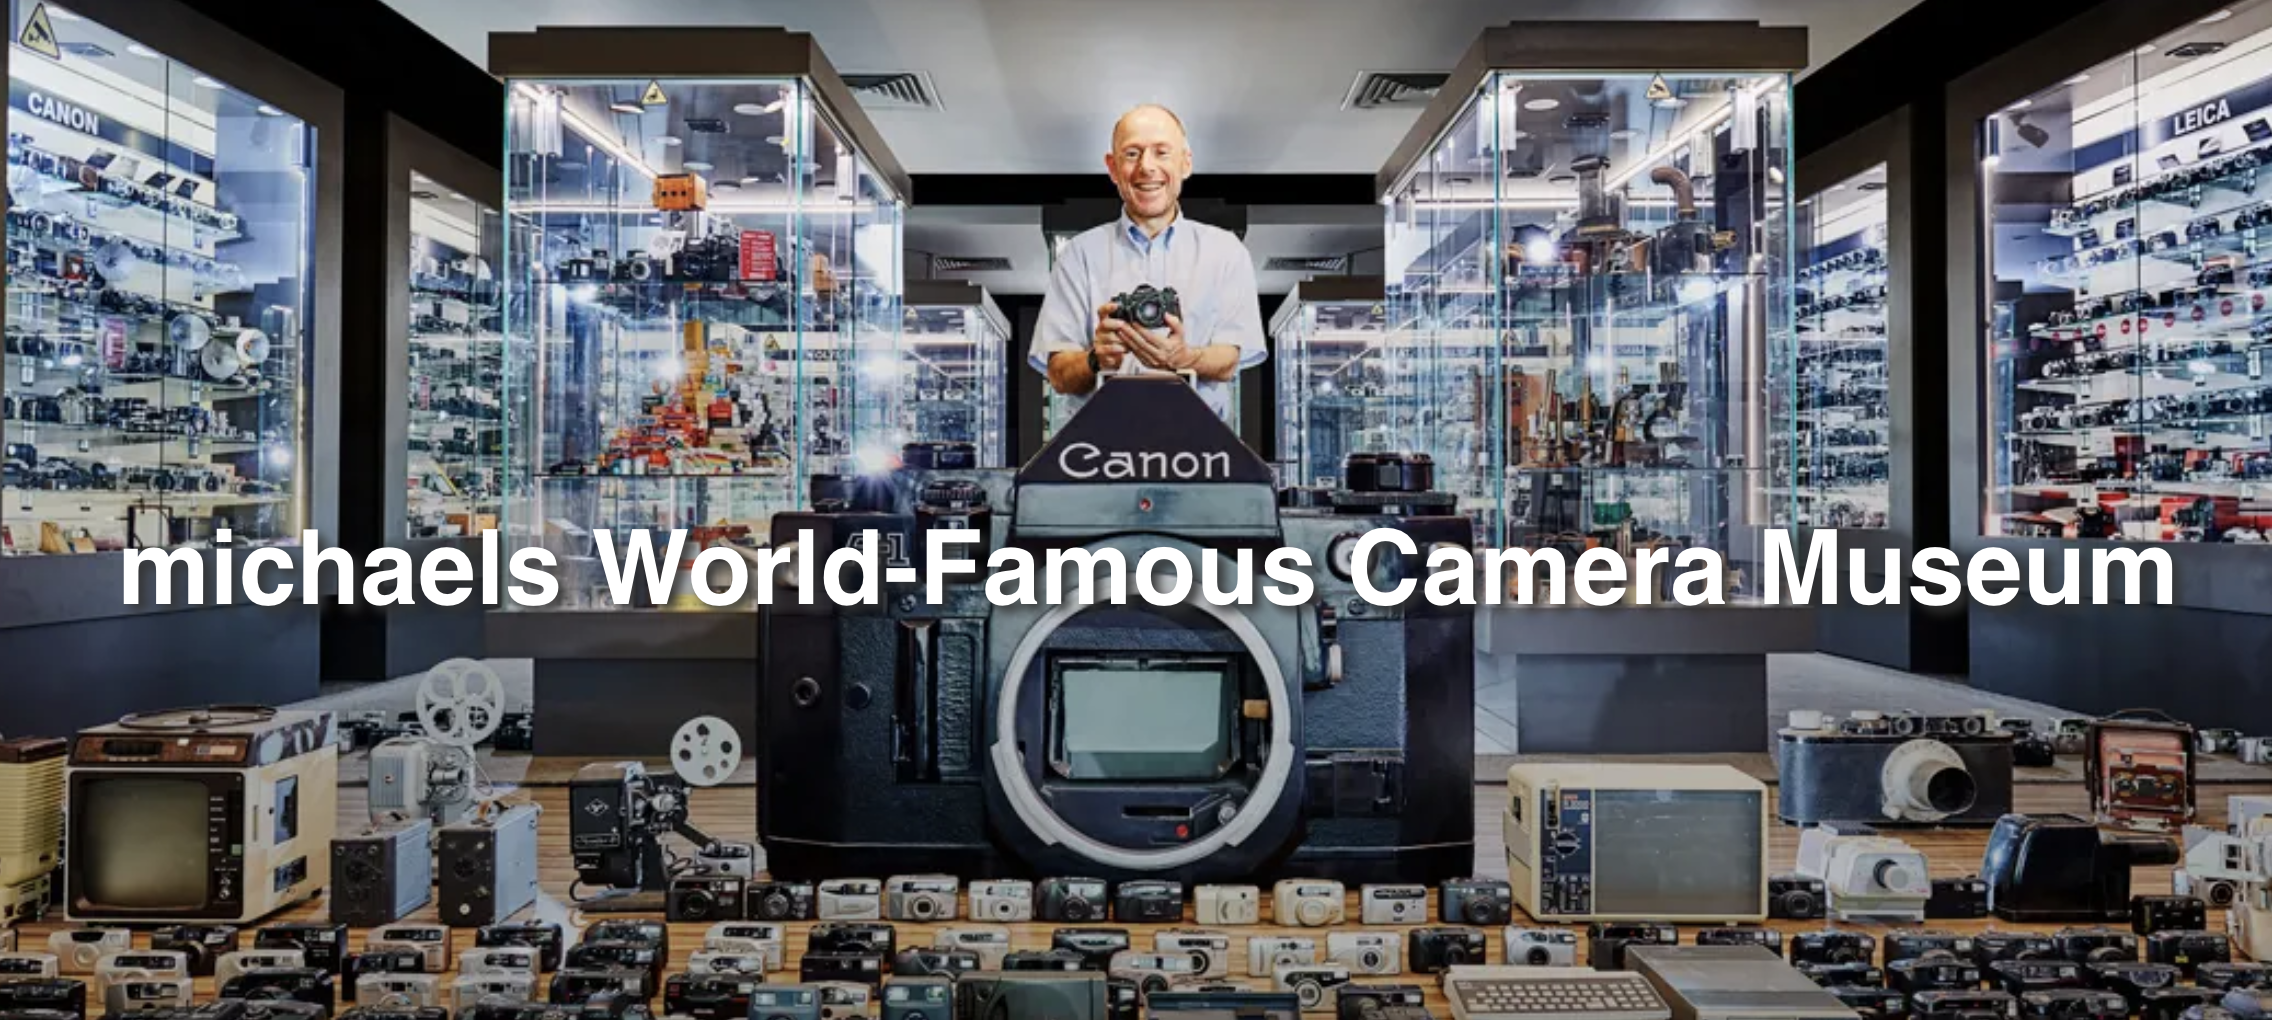 Camera museum image (Pic: Michaels Camera Video and Digital)